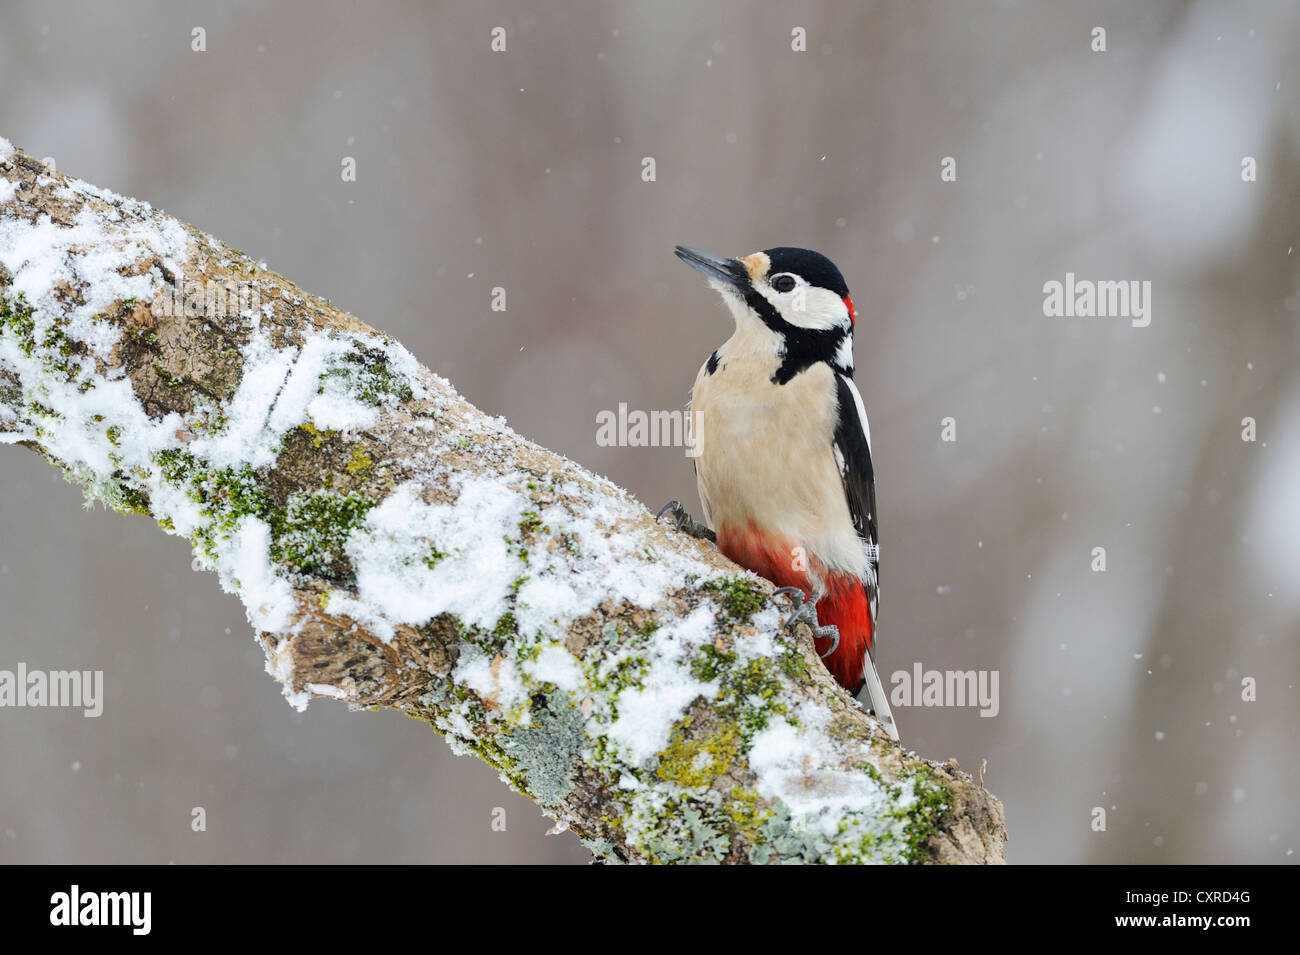 Great Spotted Woodpecker (Dendrocopos major) perched on a branch, Bulgaria, Europe - Stock Image